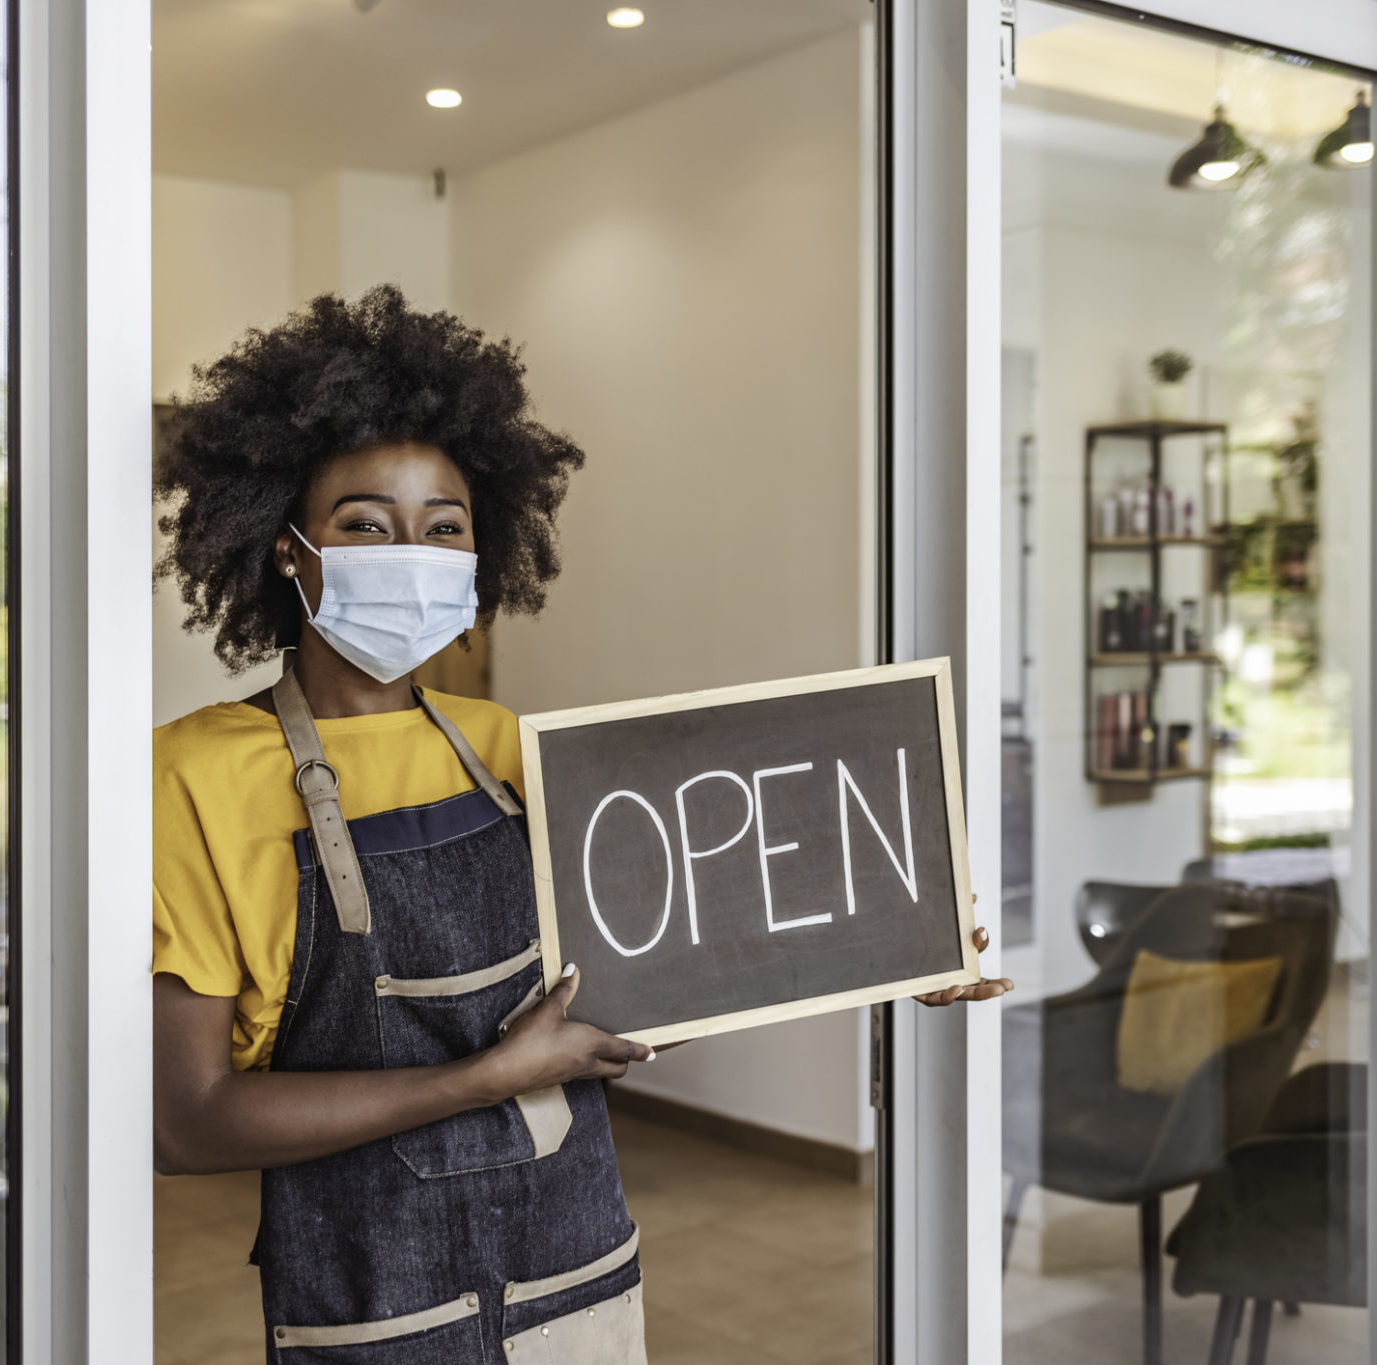 One African-American Woman with surgical protective mask holding open sign in front of her small business store.